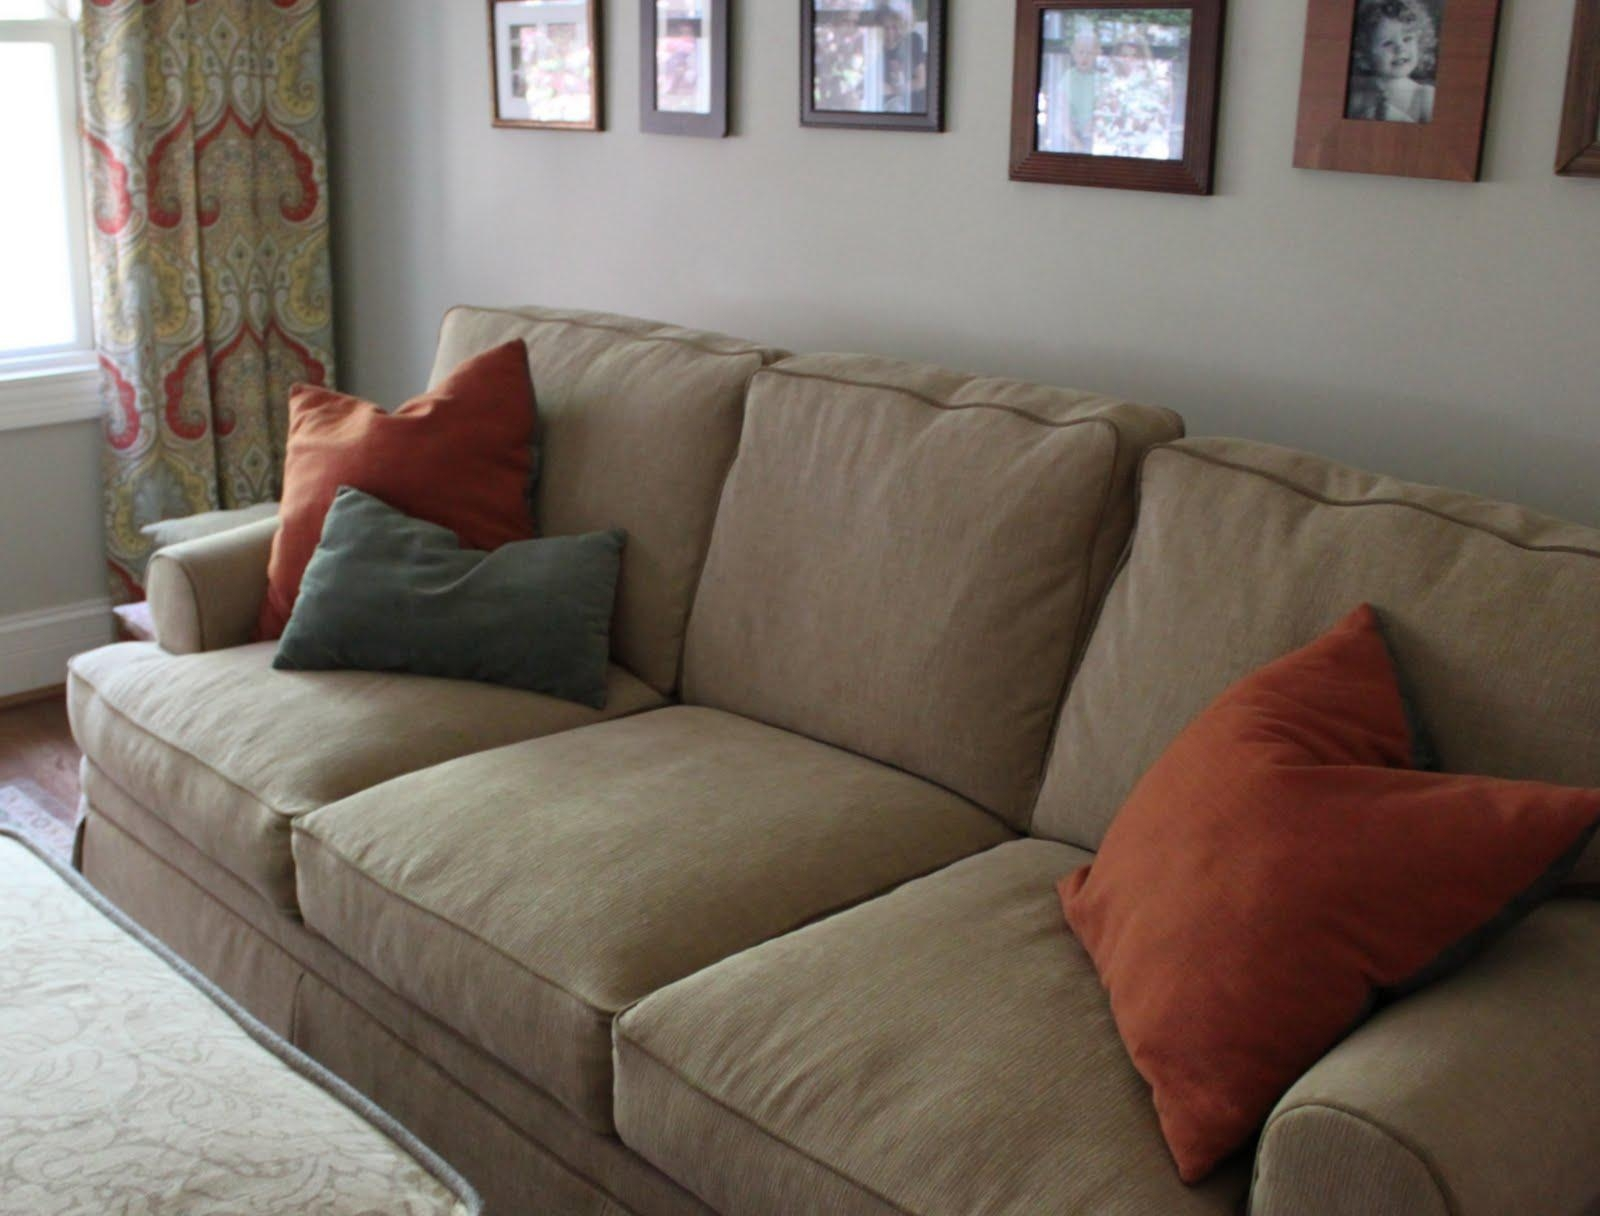 Big Comfy Sofa | Sofa Gallery | Kengire Pertaining To Big Comfy Sofas (Image 6 of 25)